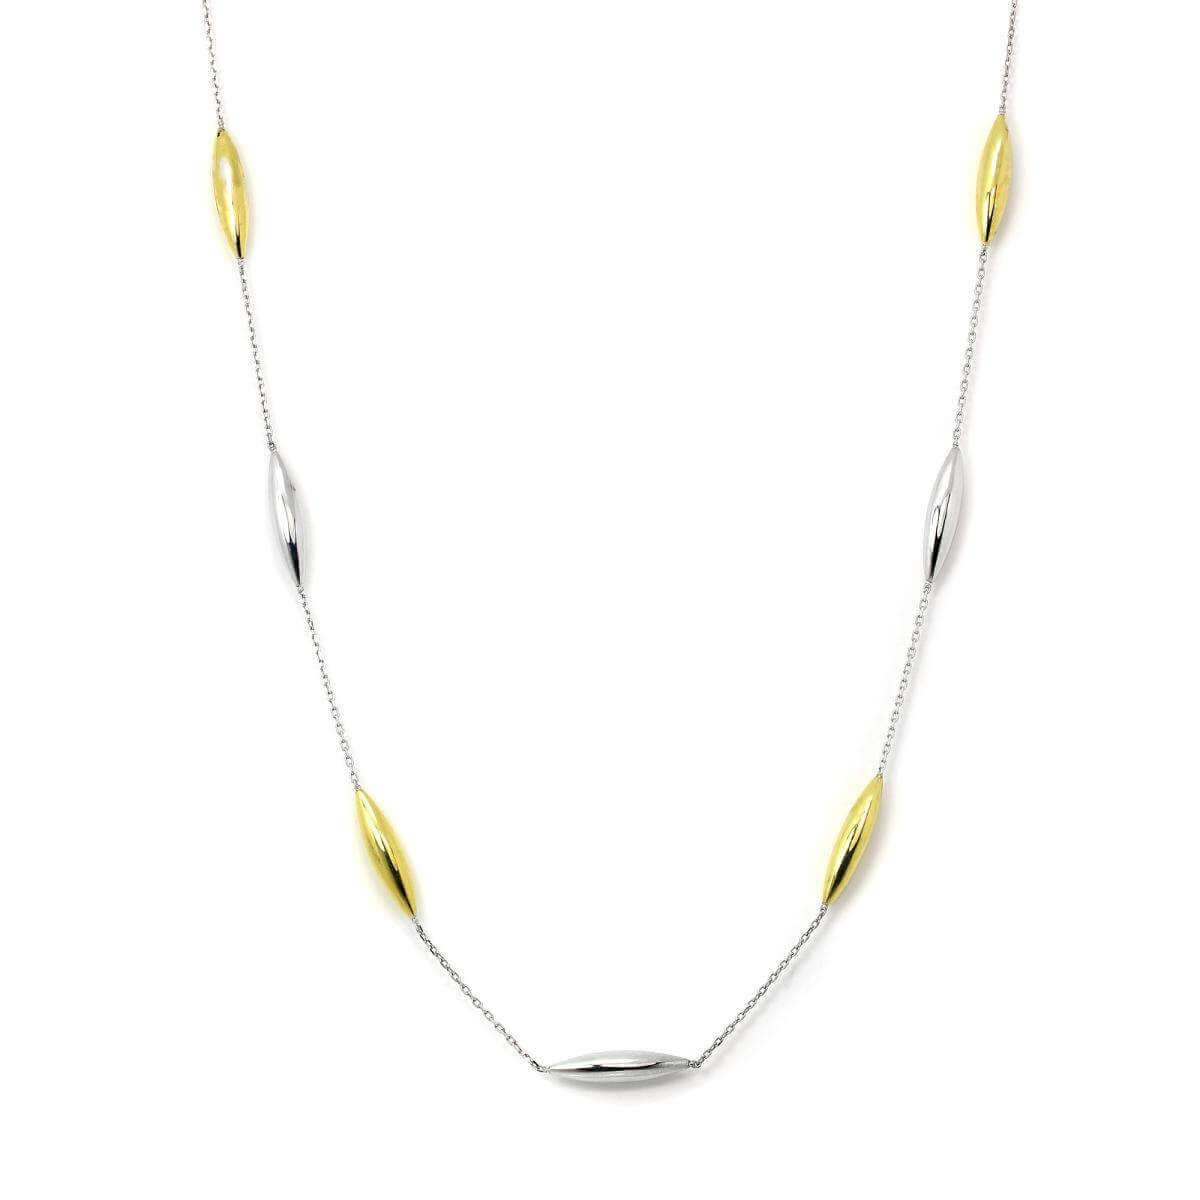 9ct Yellow & White Gold Fine 17 Inch Collarette Necklace wit